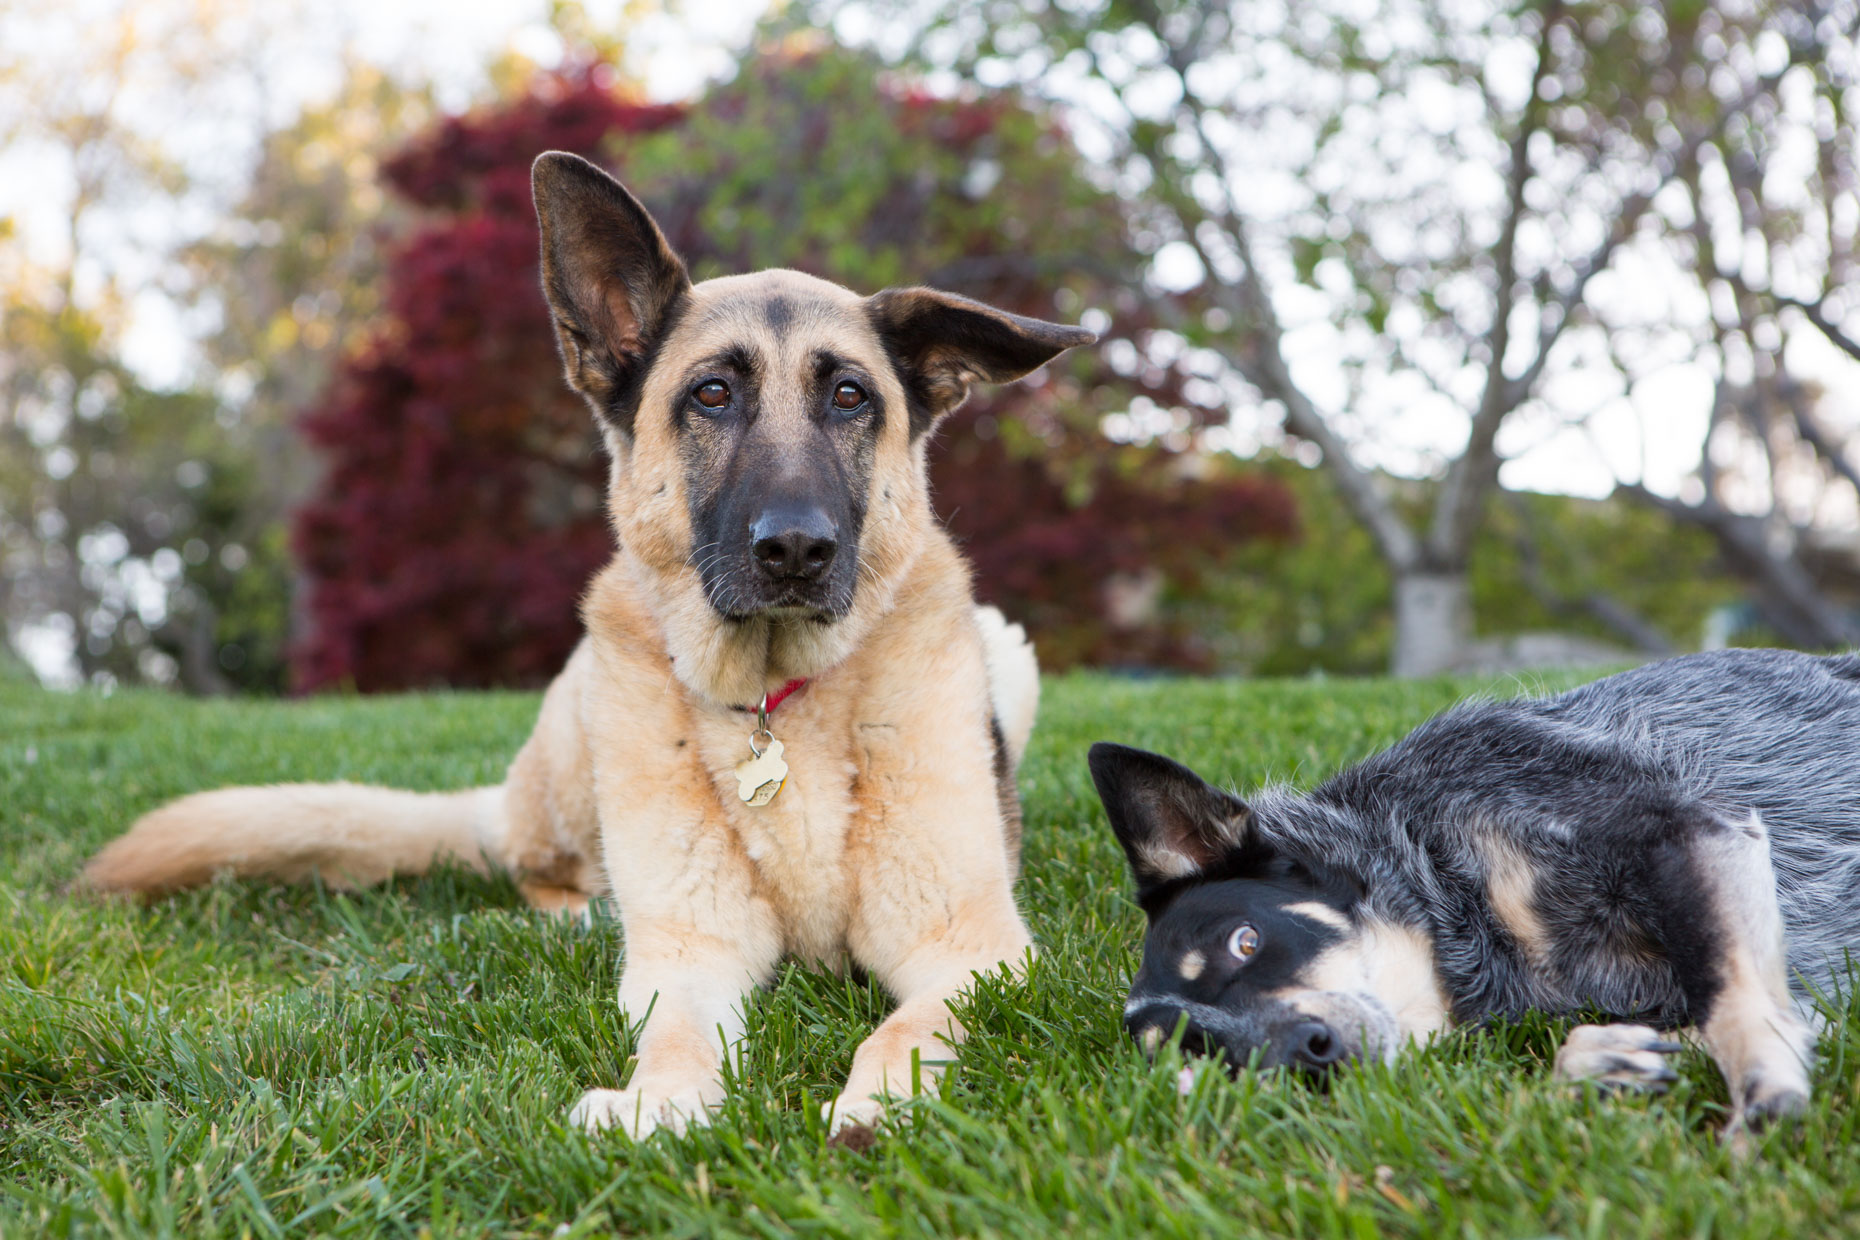 Dog and Pet Photography | Two Dogs by Mark Rogers